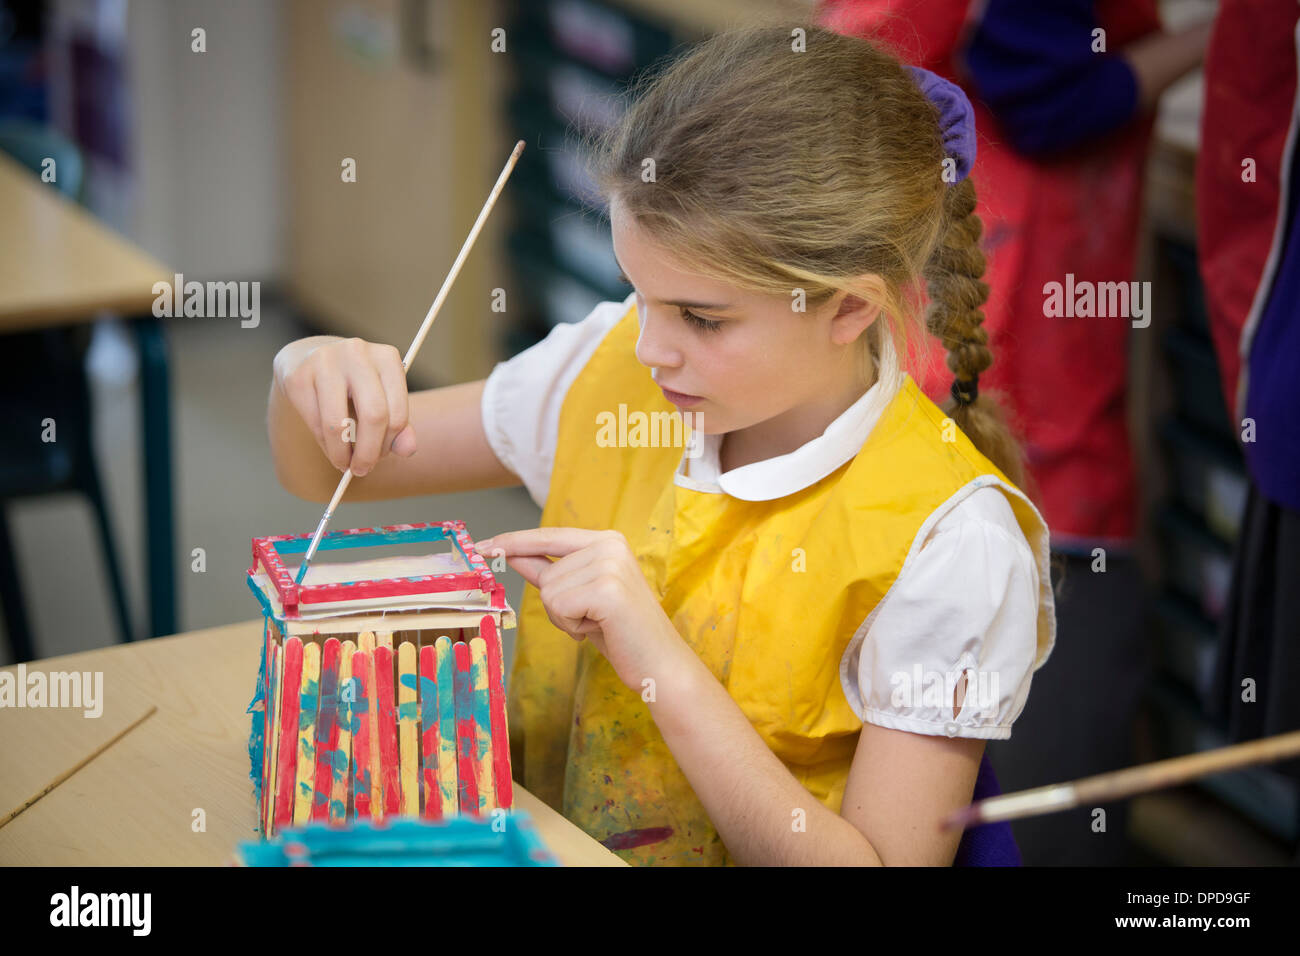 A girl in primary school in the UK making a model of a beach hut in an arts lesson. - Stock Image